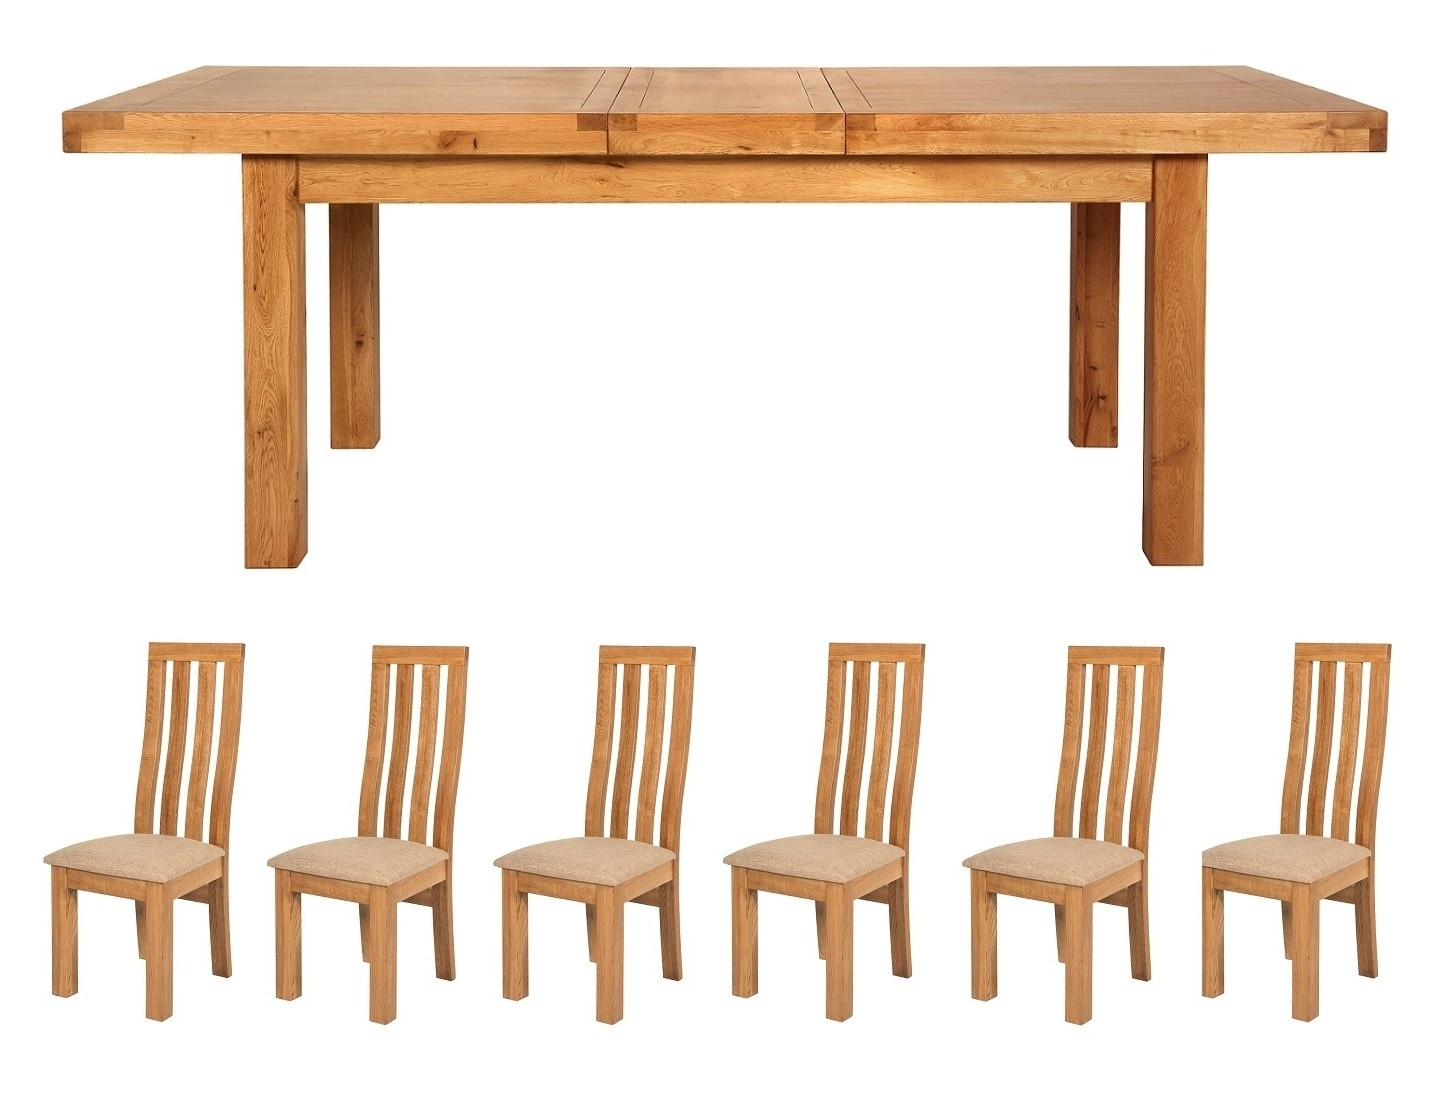 Fashionable Light Oak Dining Tables And 6 Chairs Inside Manor Solid Light Oak Large Extending Dining Table And 6 Chairs Set (View 3 of 25)